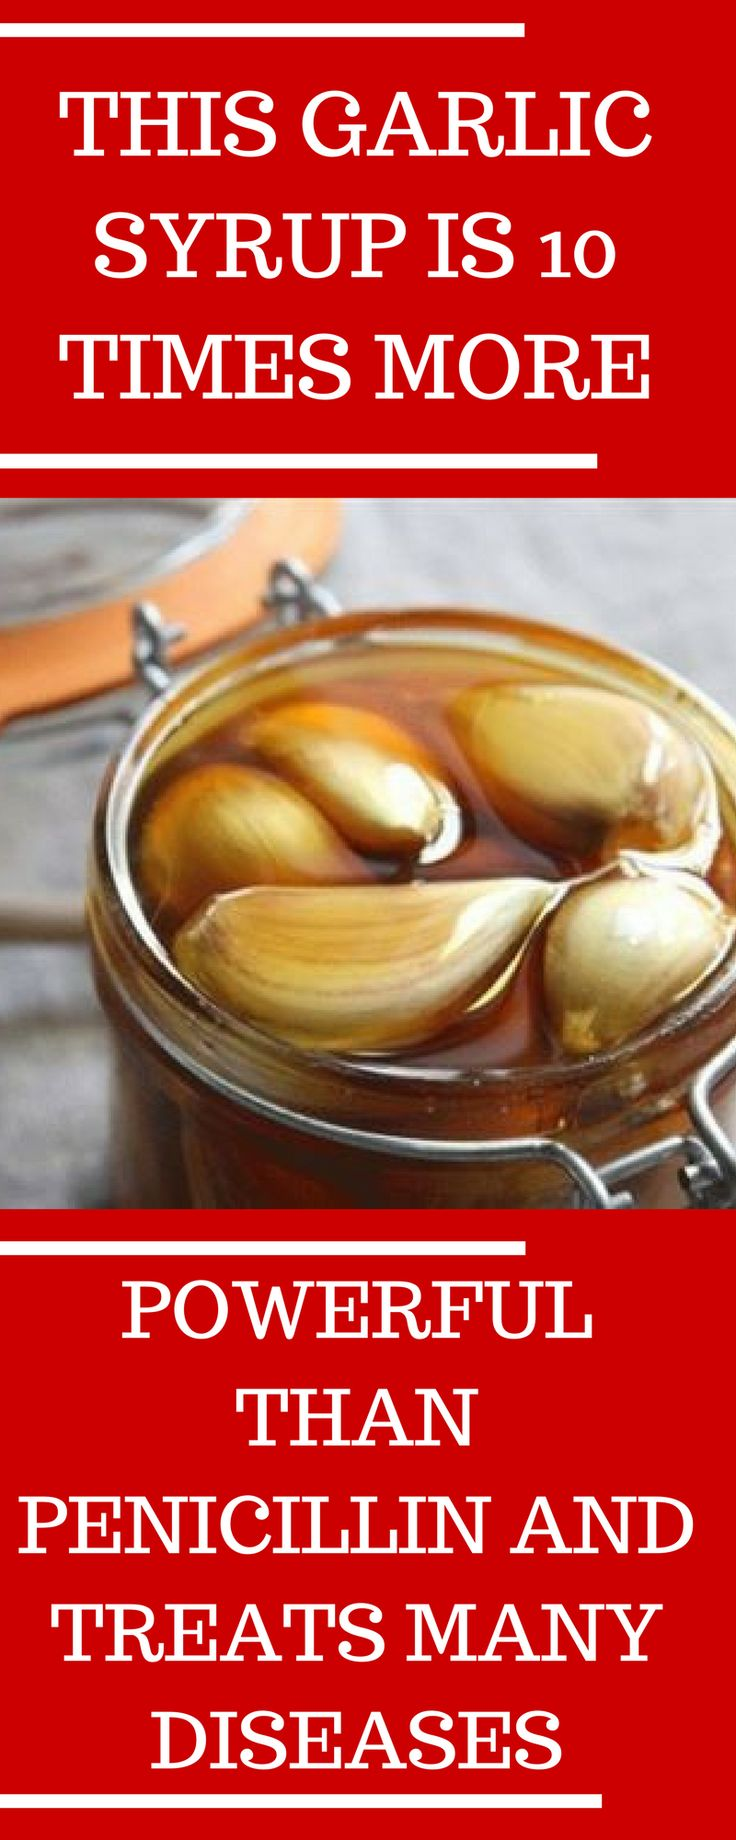 THIS GARLIC SYRUP IS 10 TIMES MORE POWERFUL THAN PENICILLIN AND TREATS MANY DISEASES